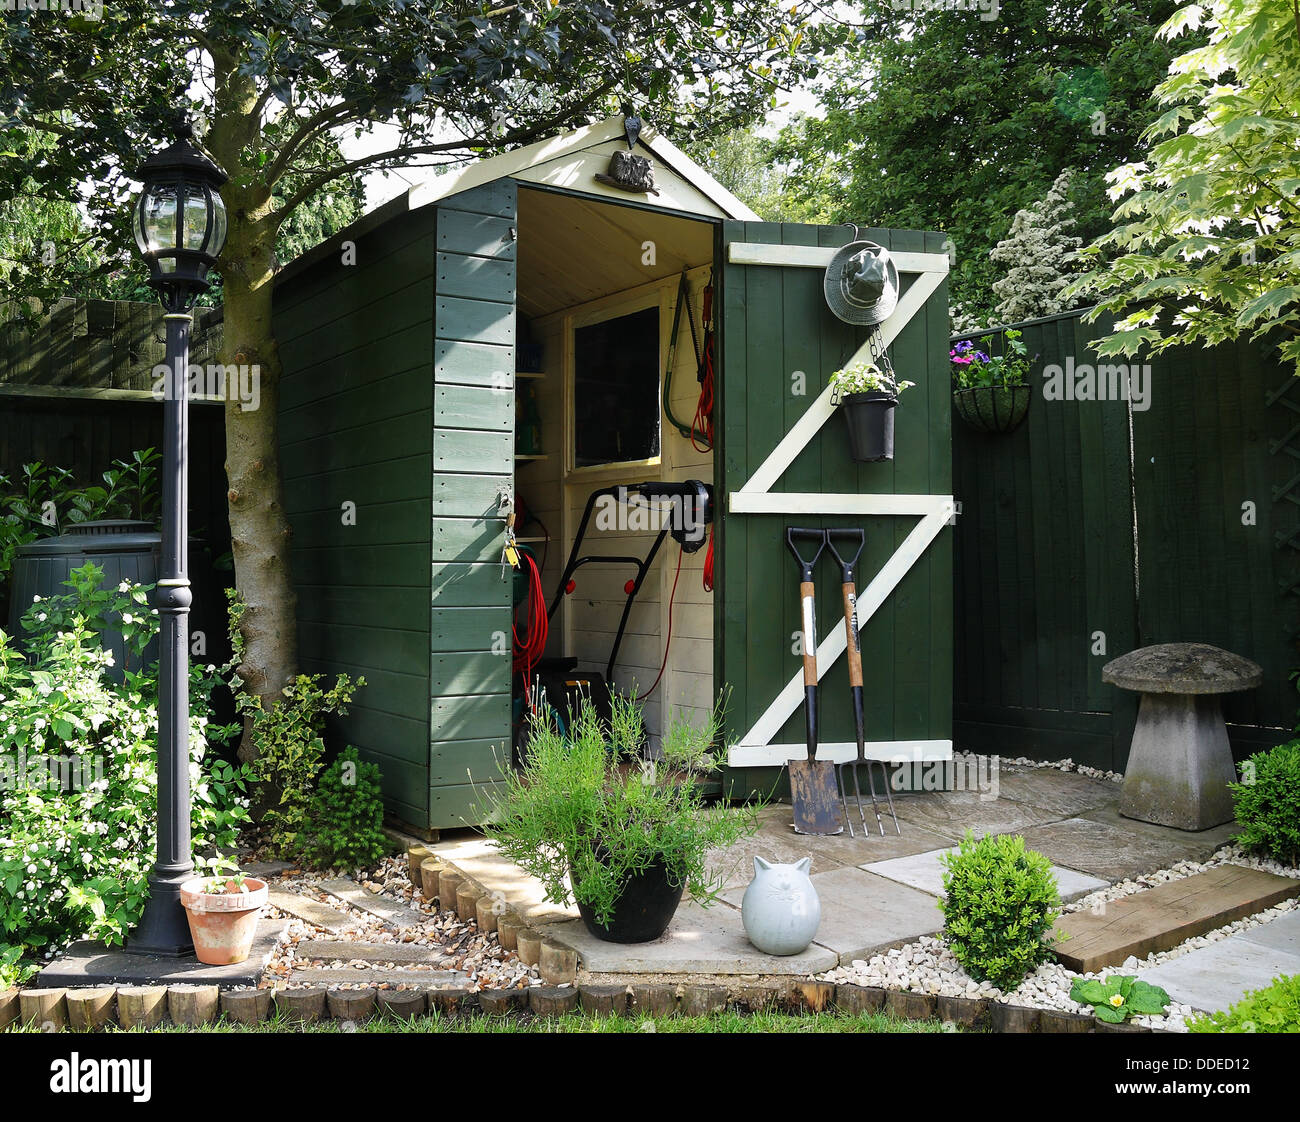 Victorian Shed Stock Photos & Victorian Shed Stock Images - Alamy